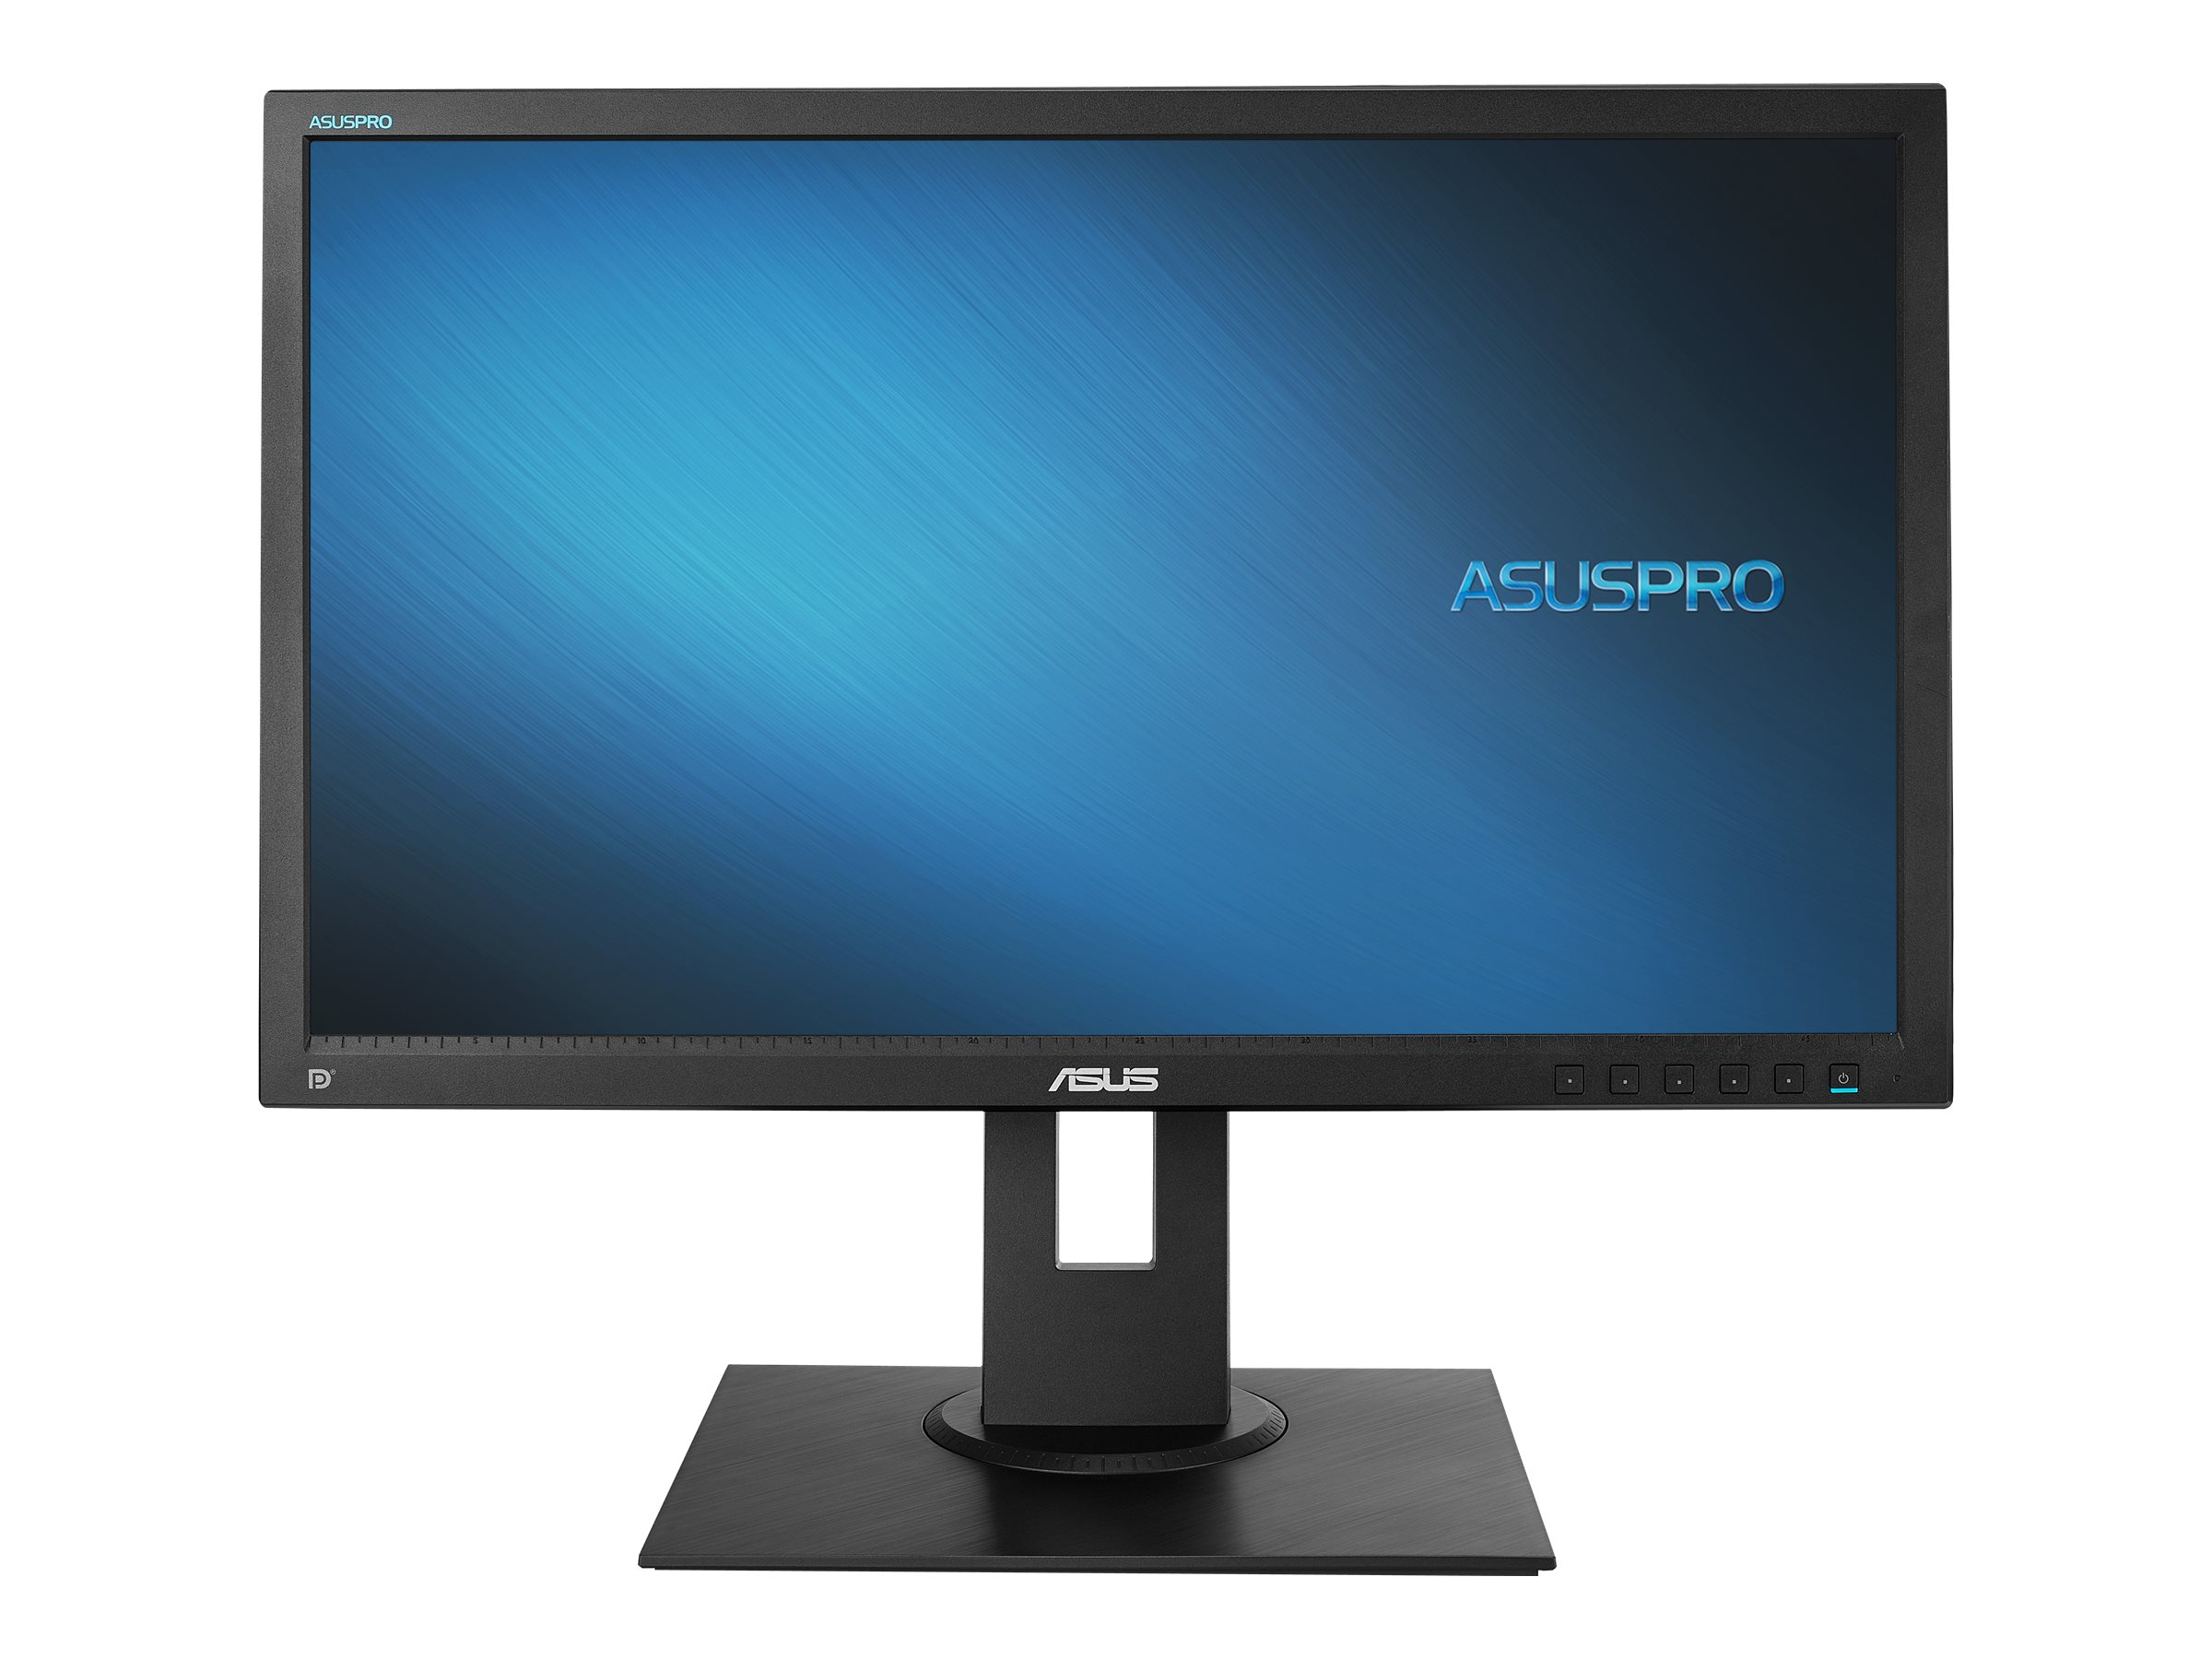 Asus 21.5 C622AQ Full HD LED-LCD Monitor, Black, C622AQ